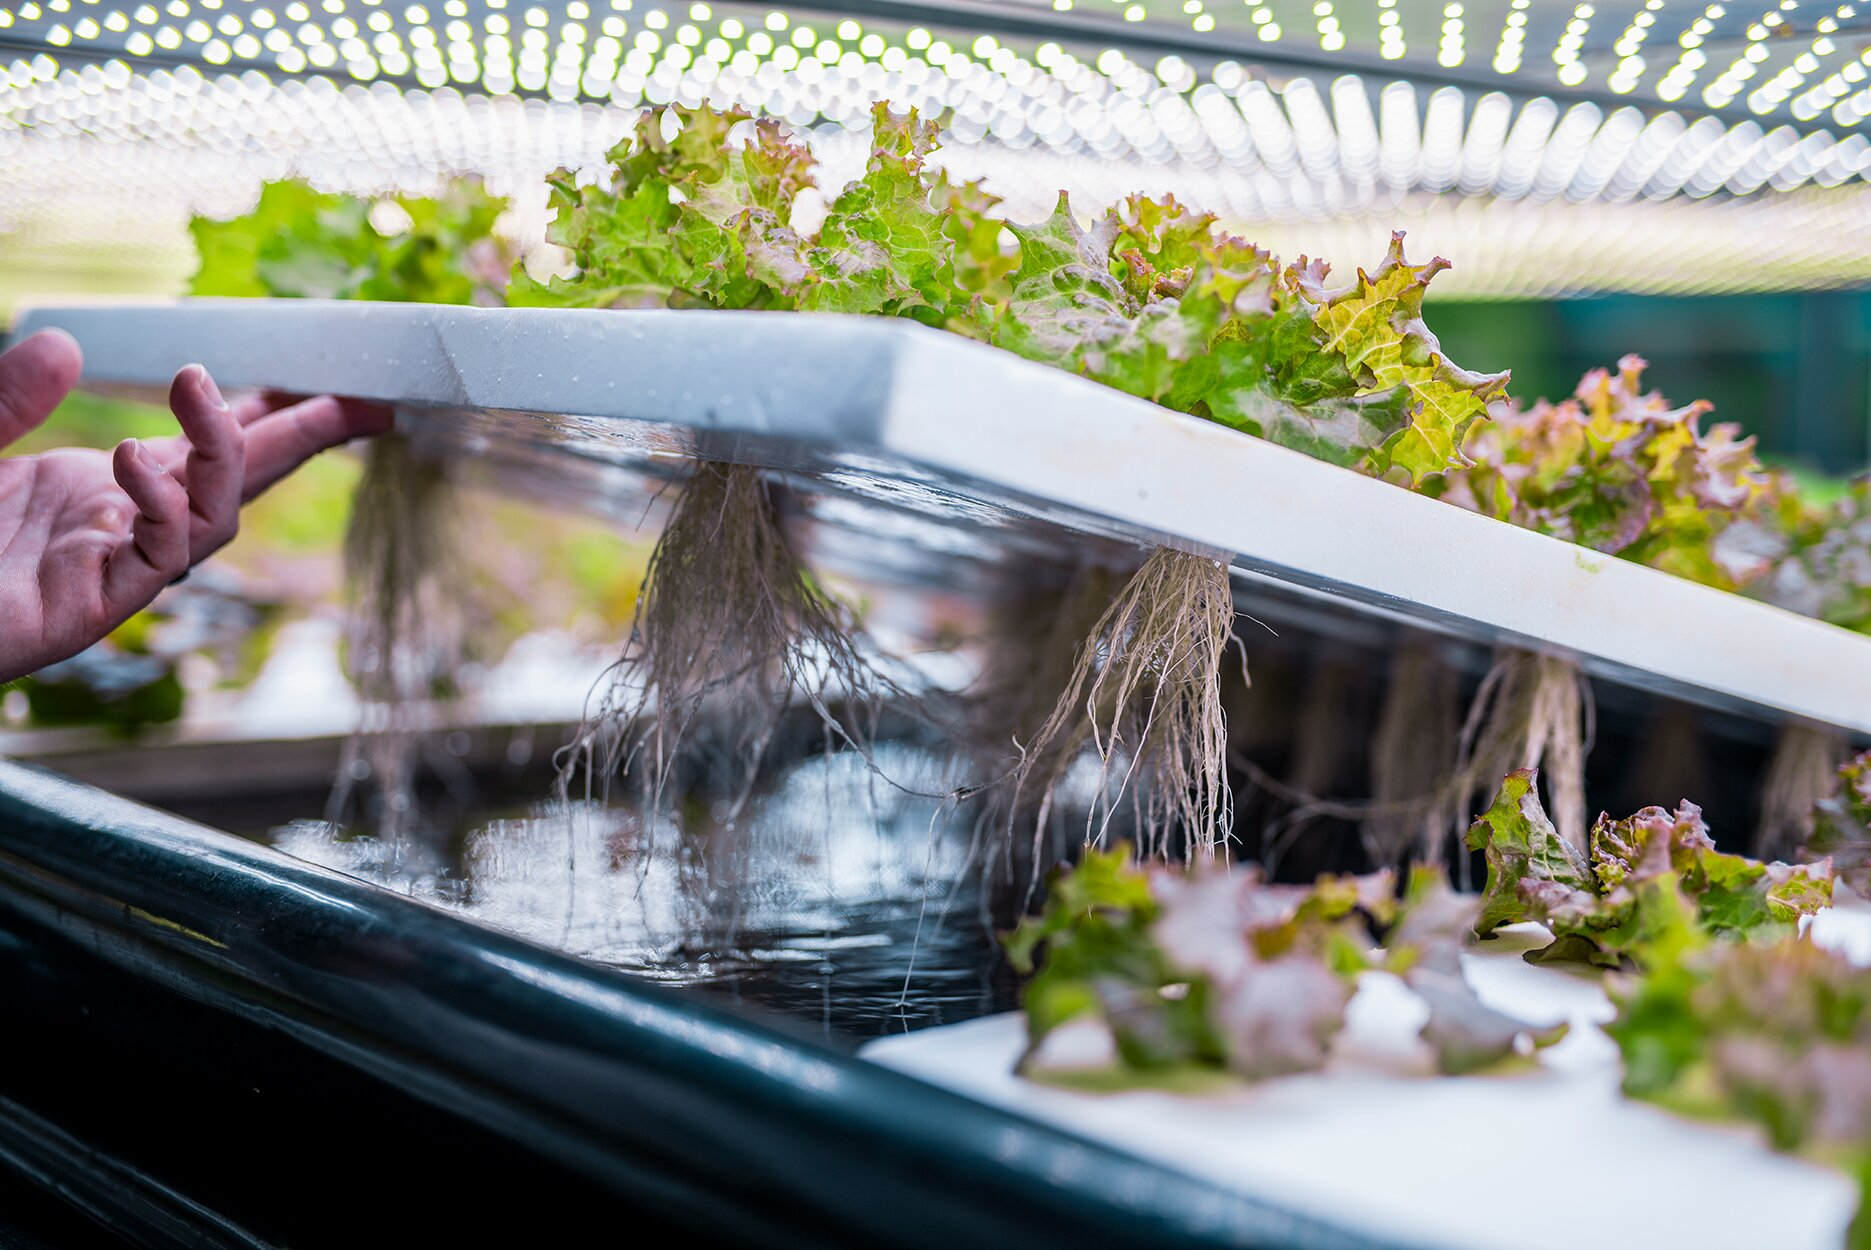 Should Hydroponic Produce Be Certified Organic? A New Lawsuit Asks the USDA to Reconsider